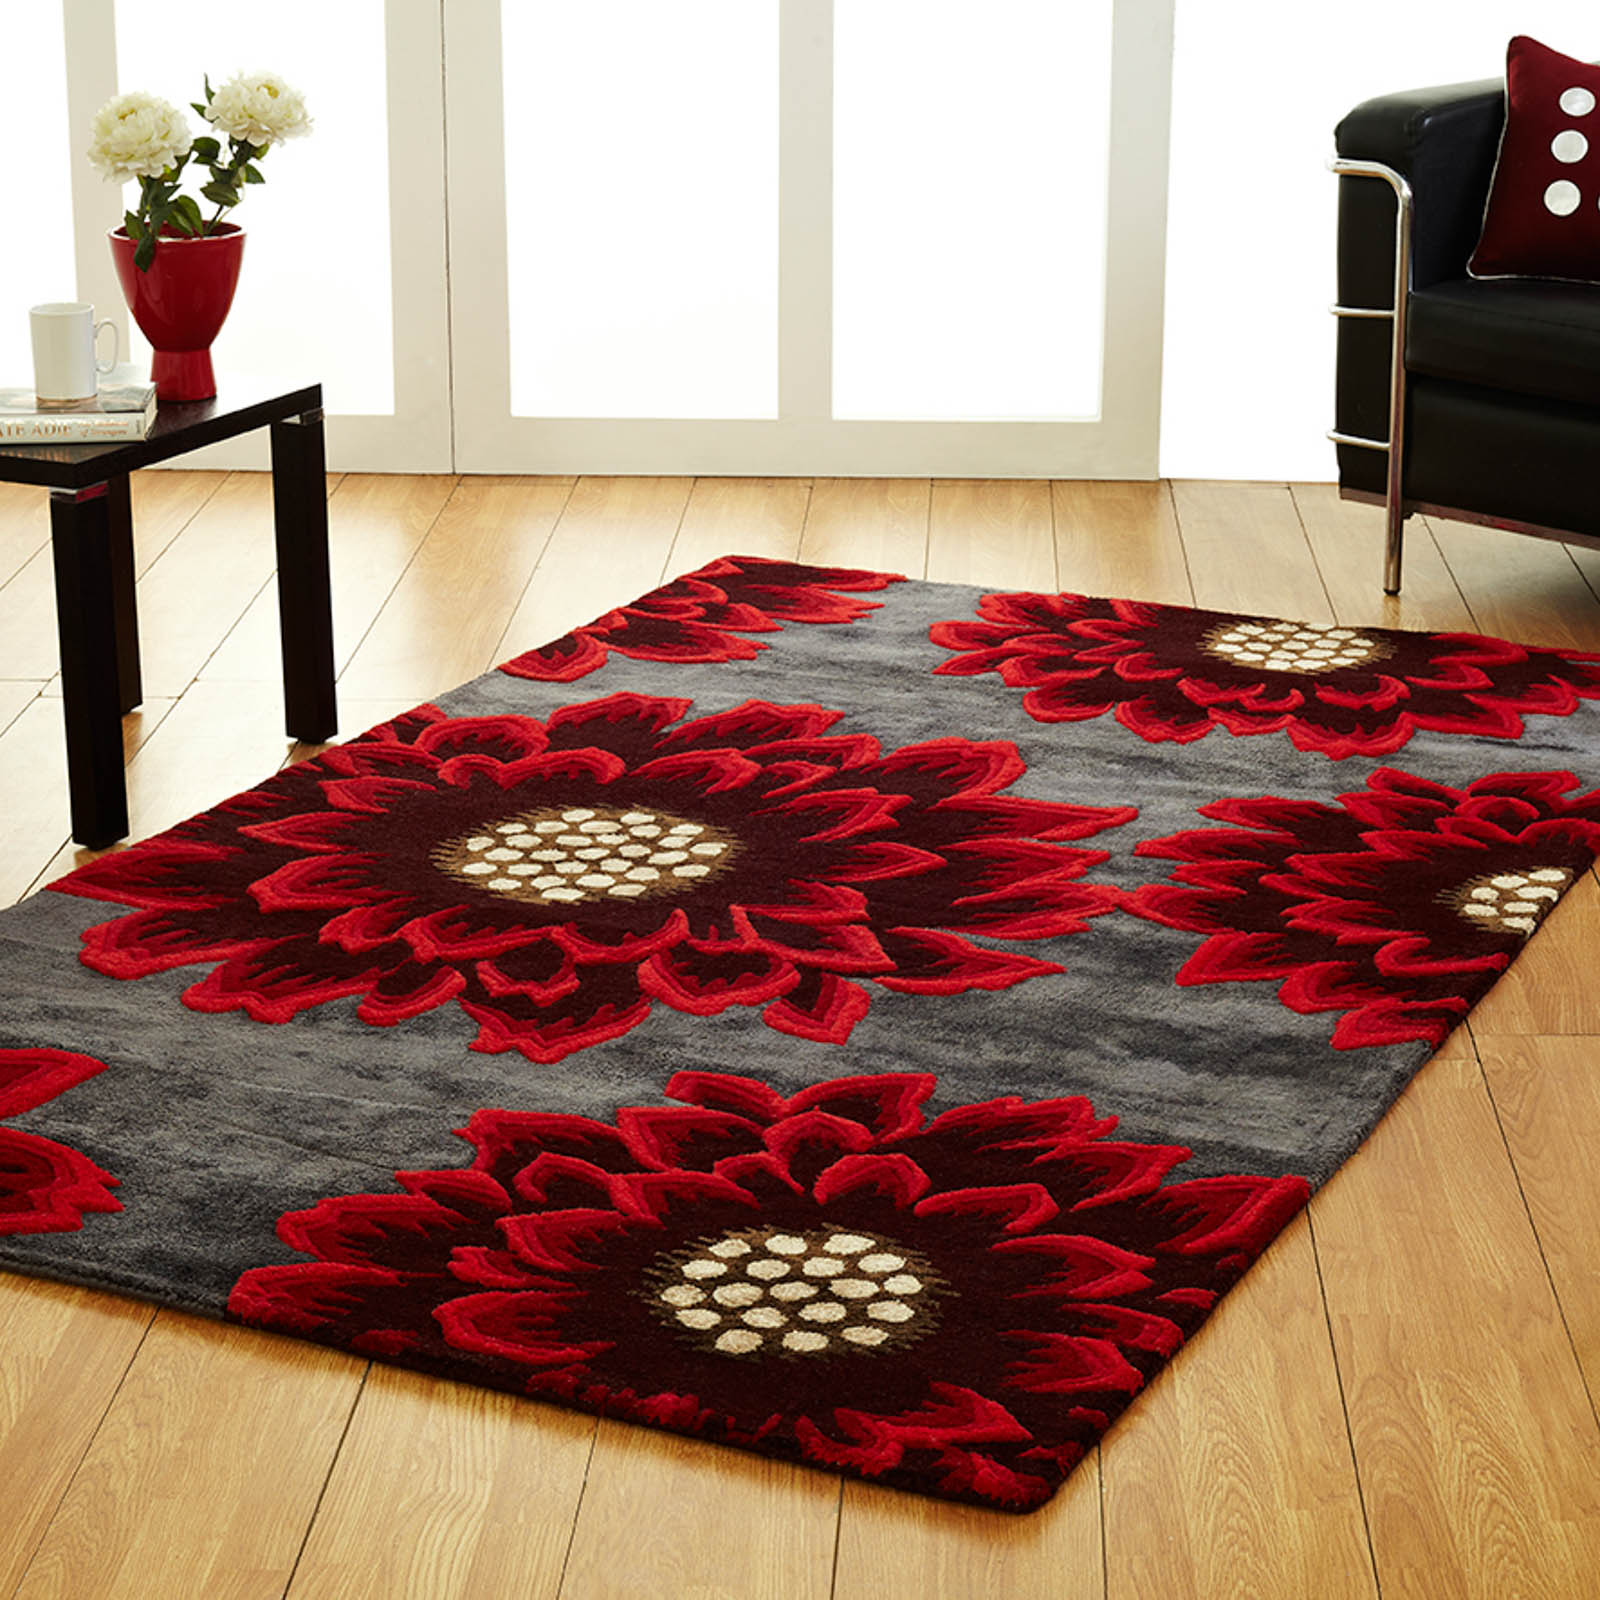 Unique Poppy rugs in Grey Red